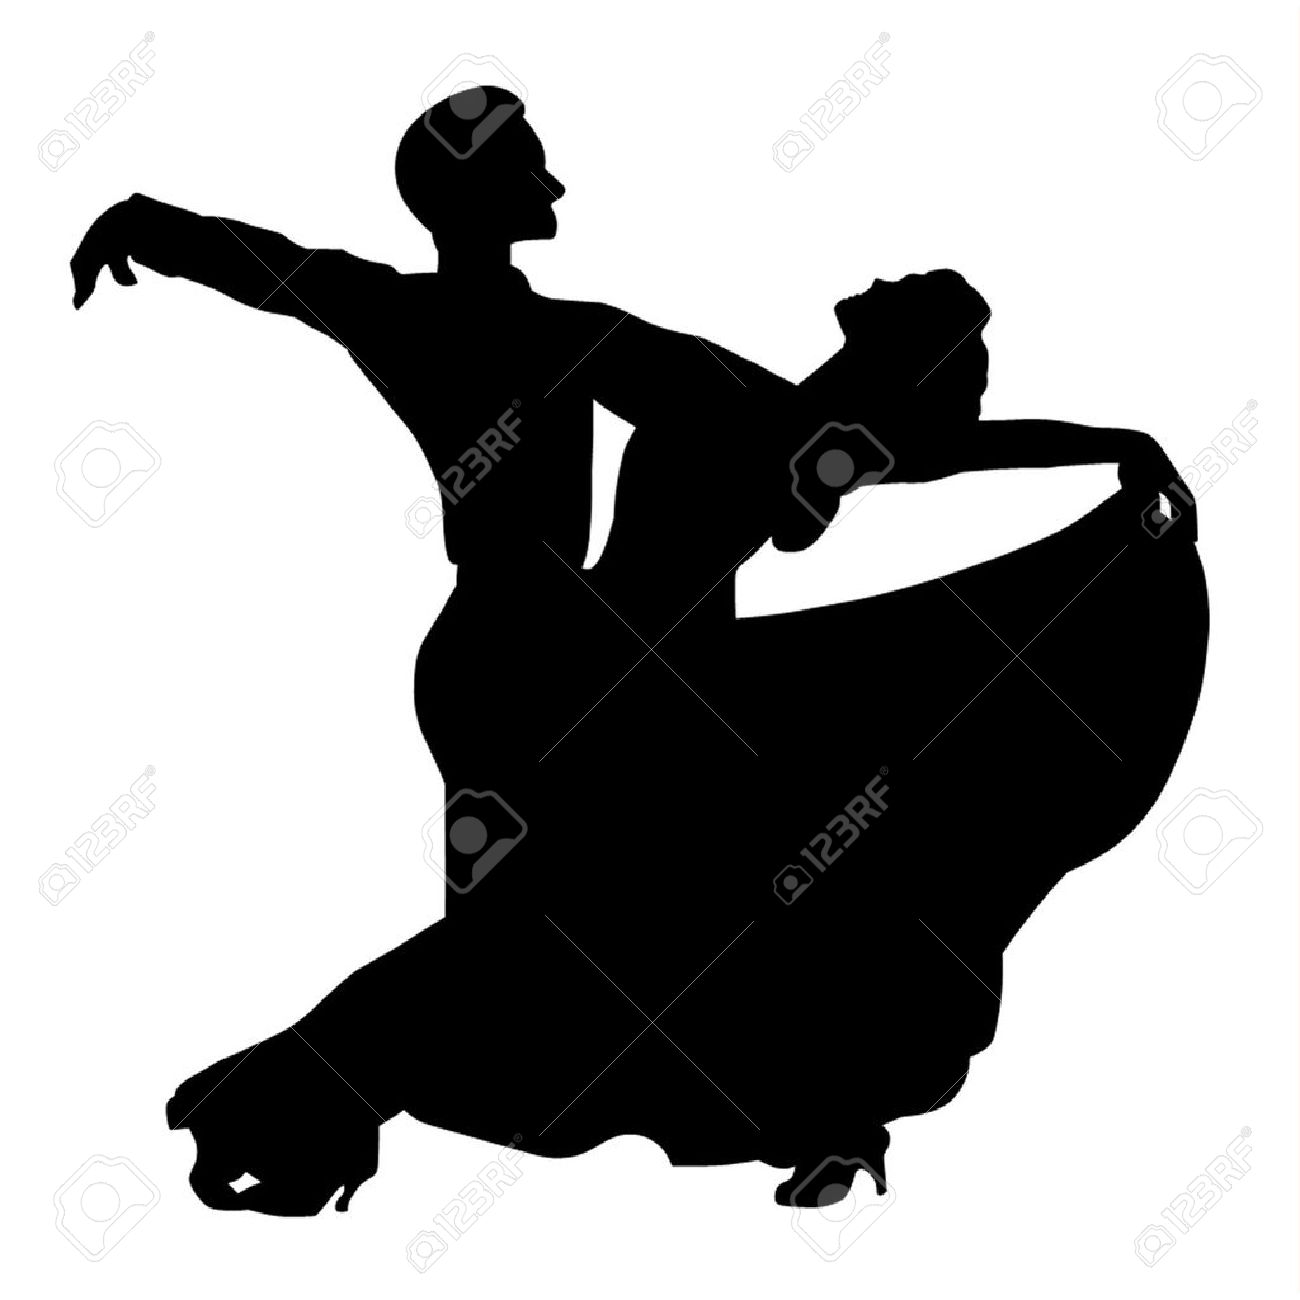 1300x1300 Clip Art Swing Dance Beautiful Dancing Silhouettes